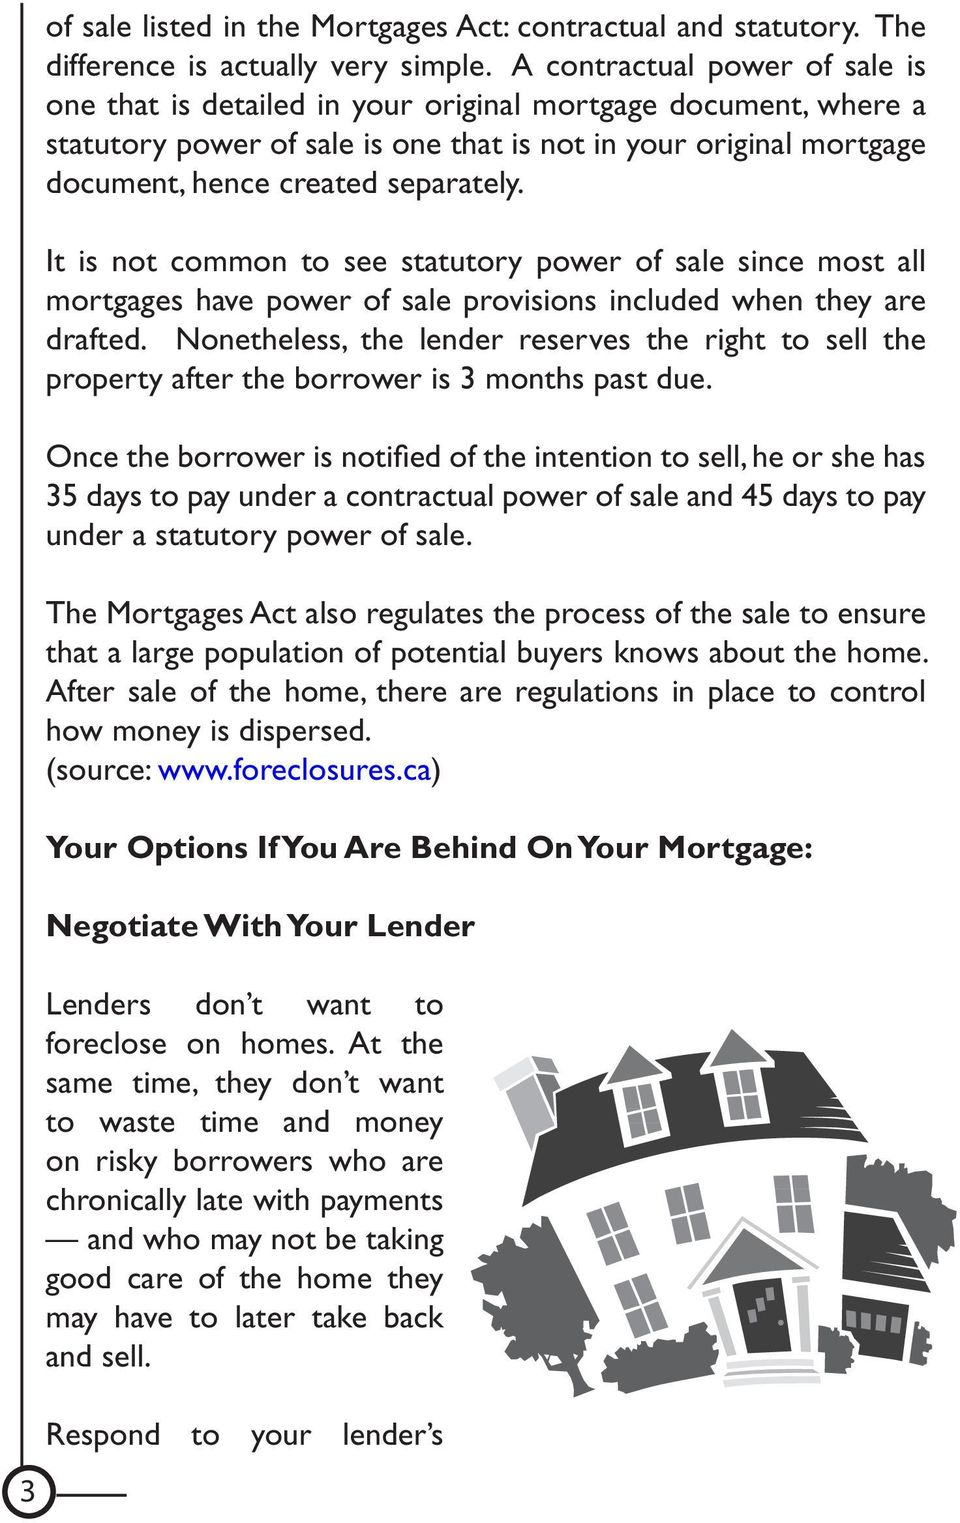 It is not common to see statutory power of sale since most all mortgages have power of sale provisions included when they are drafted.